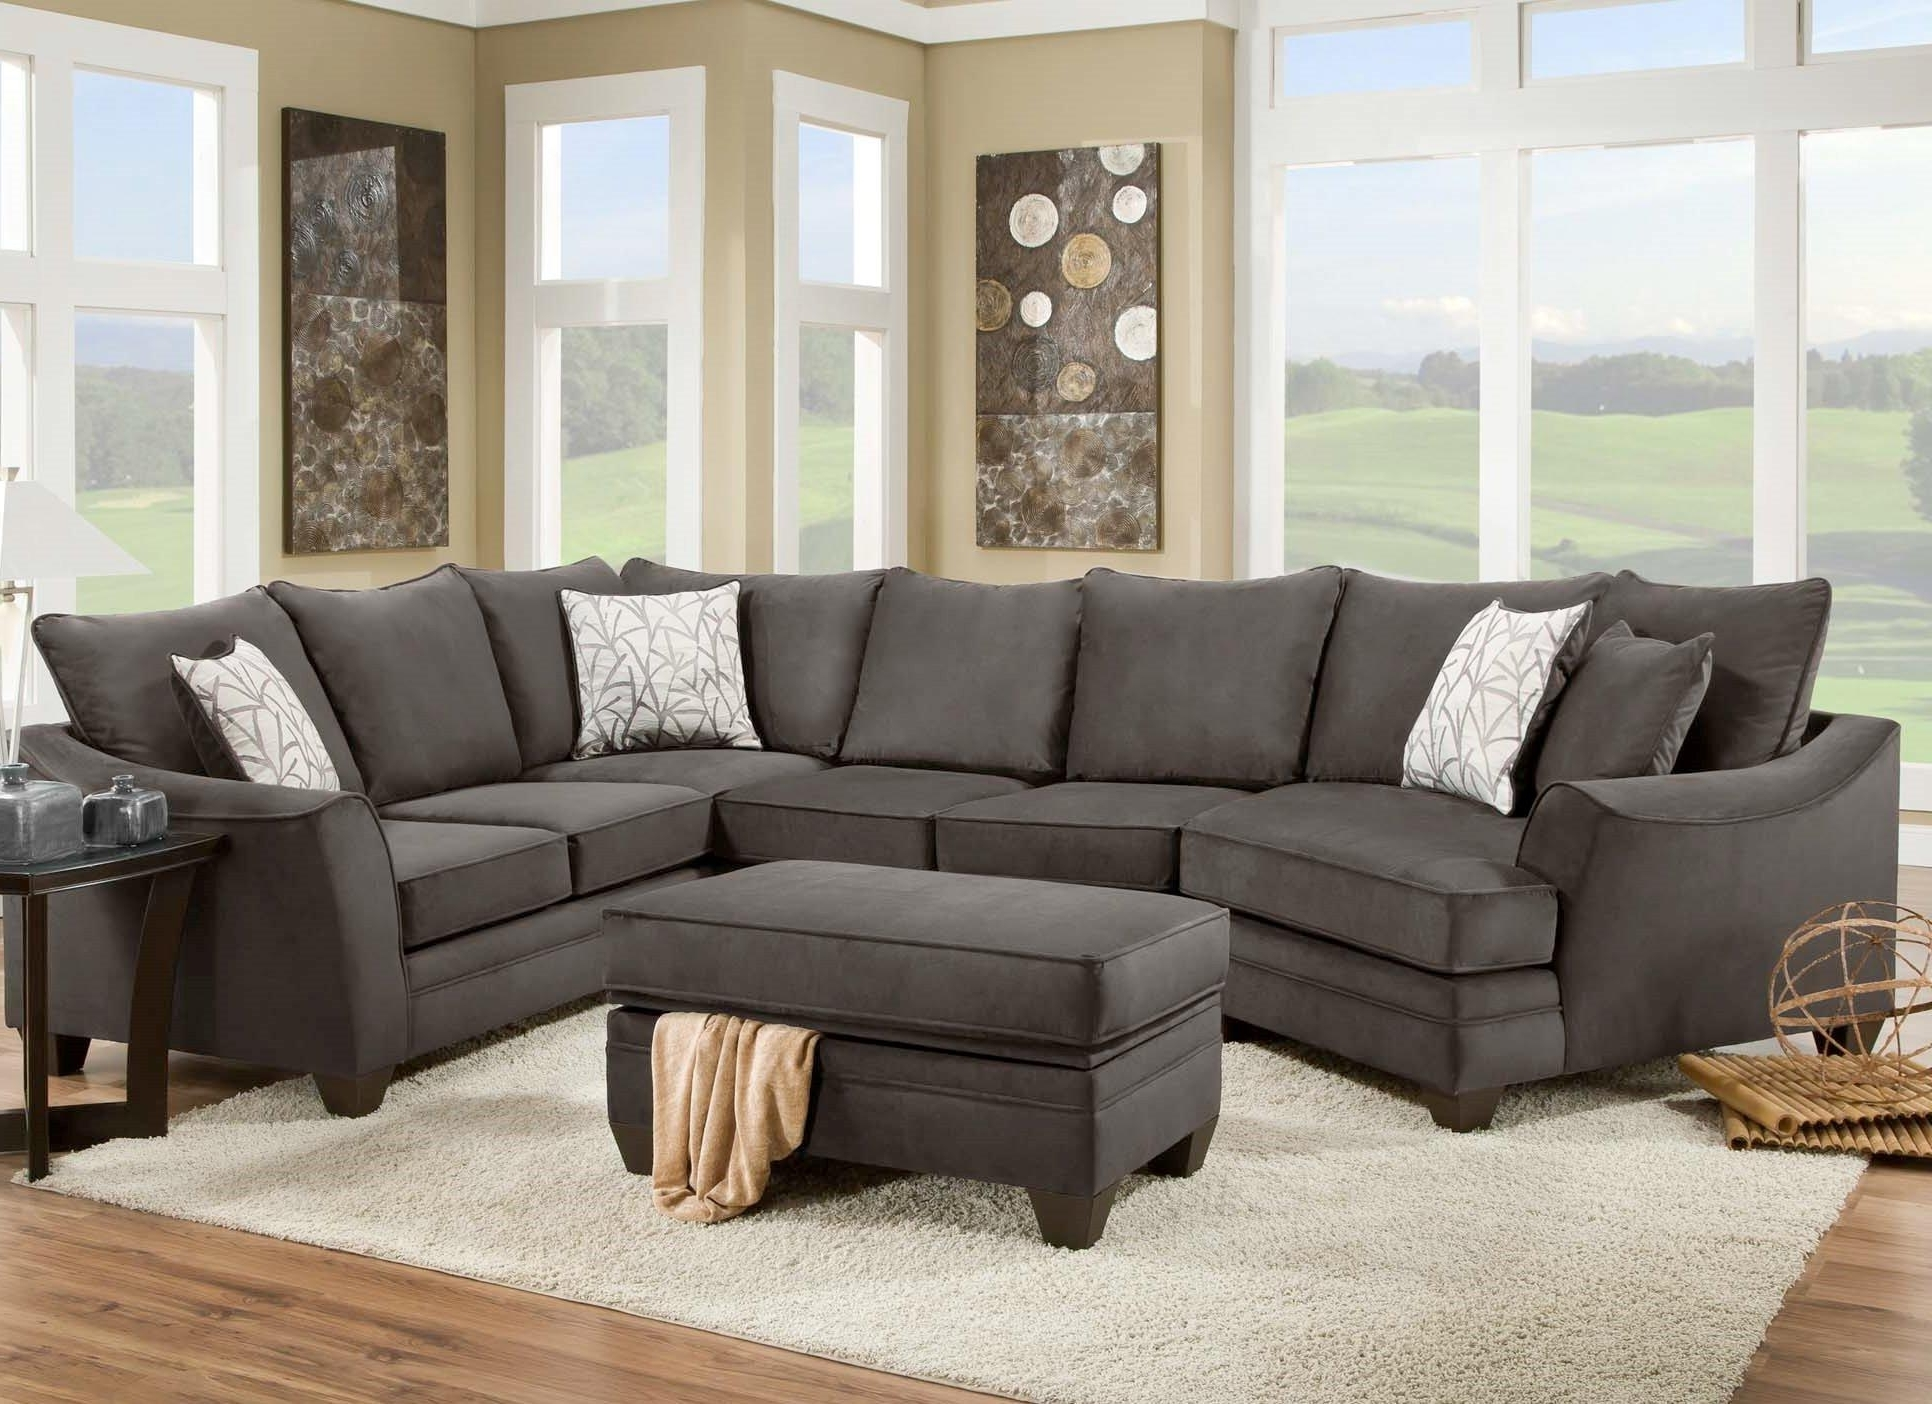 Most Recently Released Cuddler Sectional Sofas Within American Furniture 3810 Sectional Sofa That Seats 5 With Left Side (View 20 of 20)